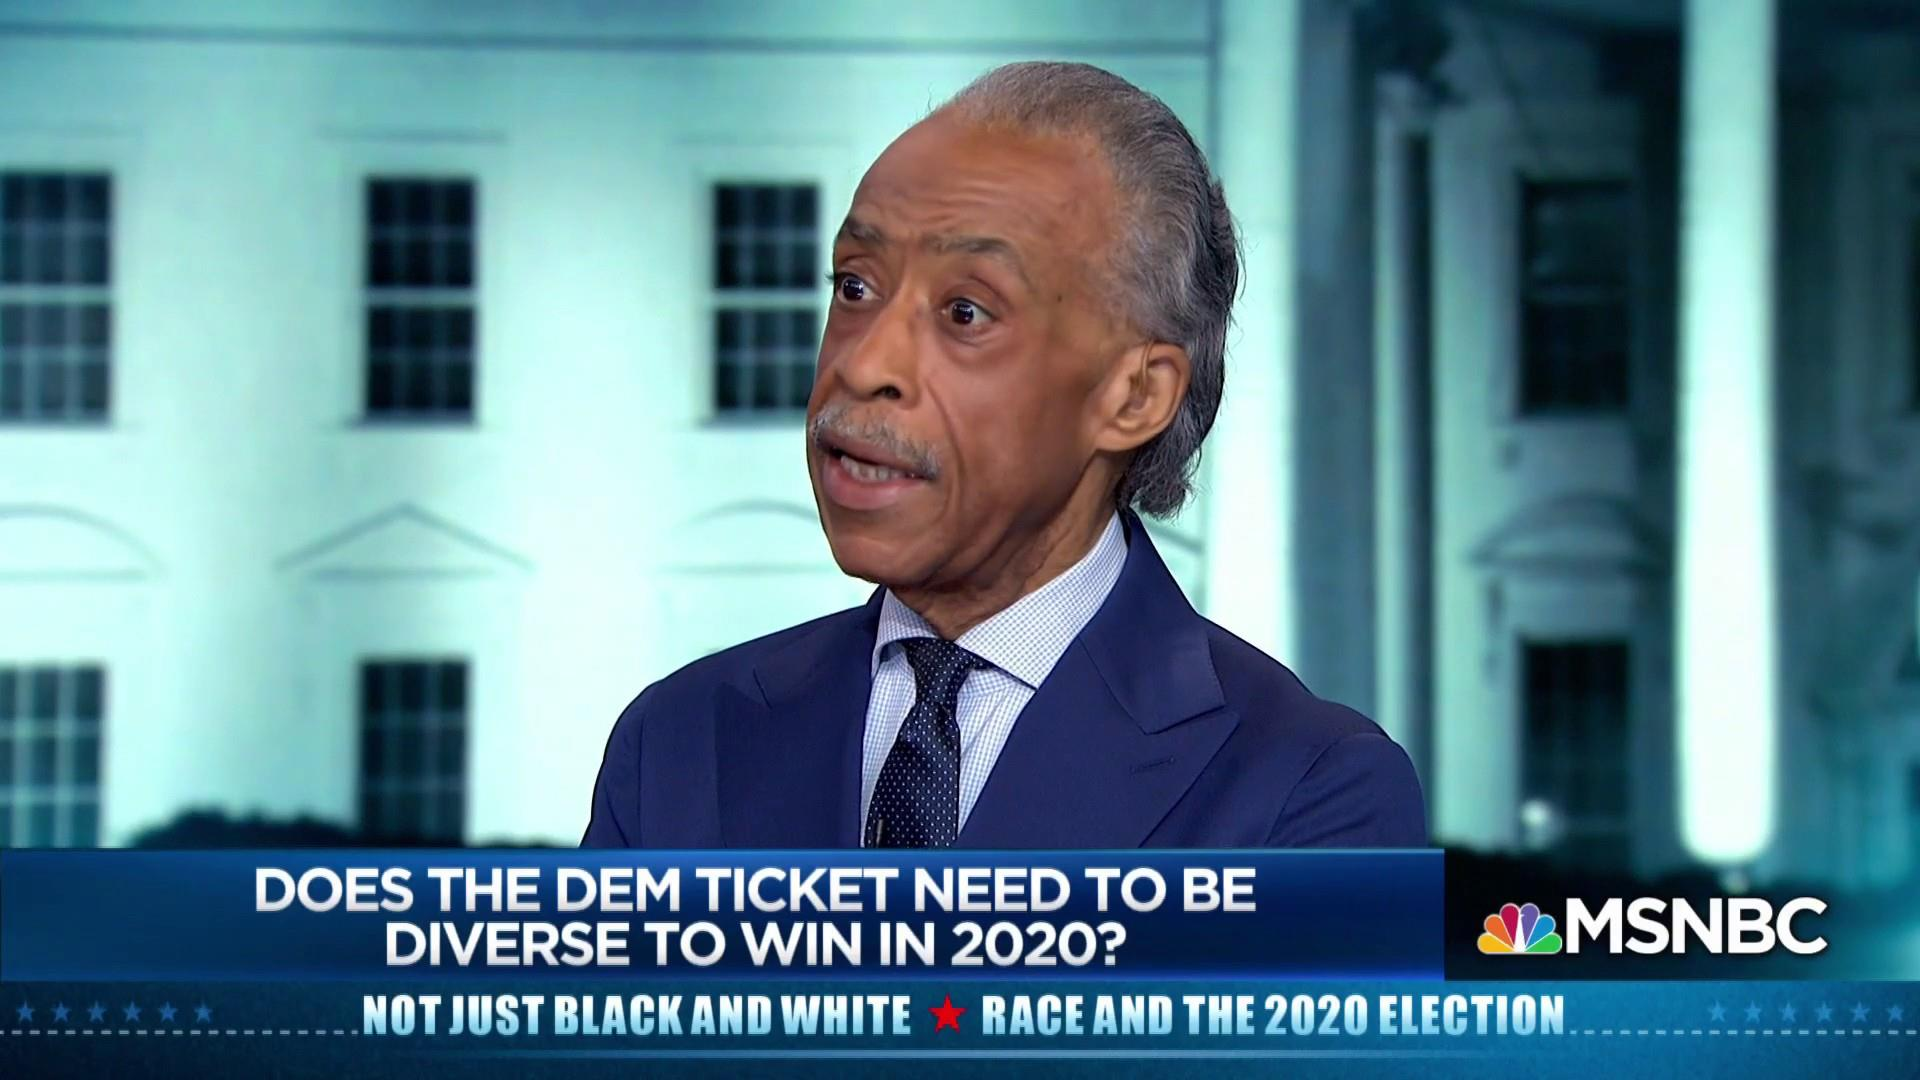 Does the Democratic ticket need to be diverse in order to win in 2020?